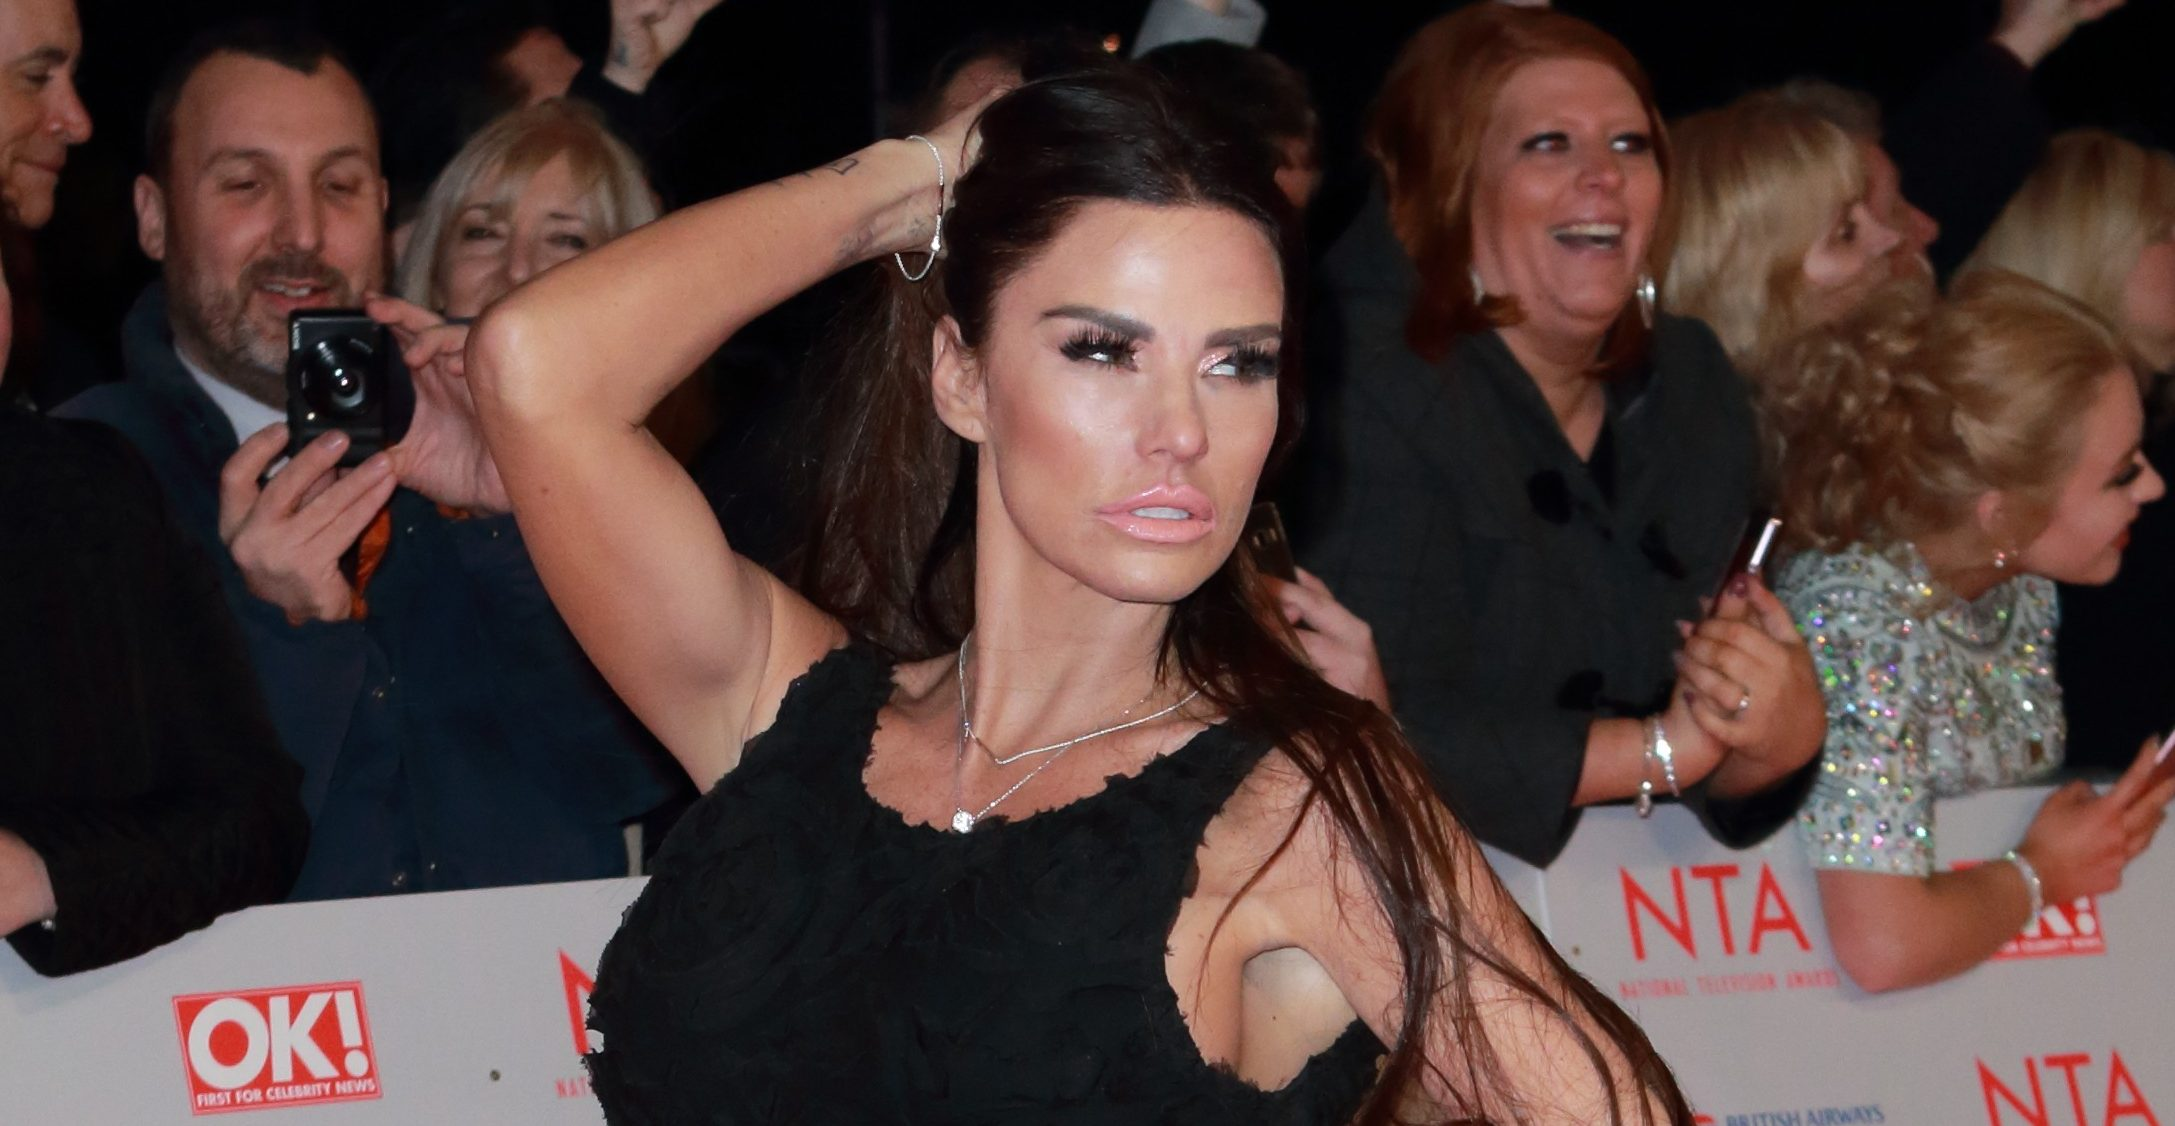 Katie Price breaks her silence after toyboy Charles Drury offered cruel sex rating